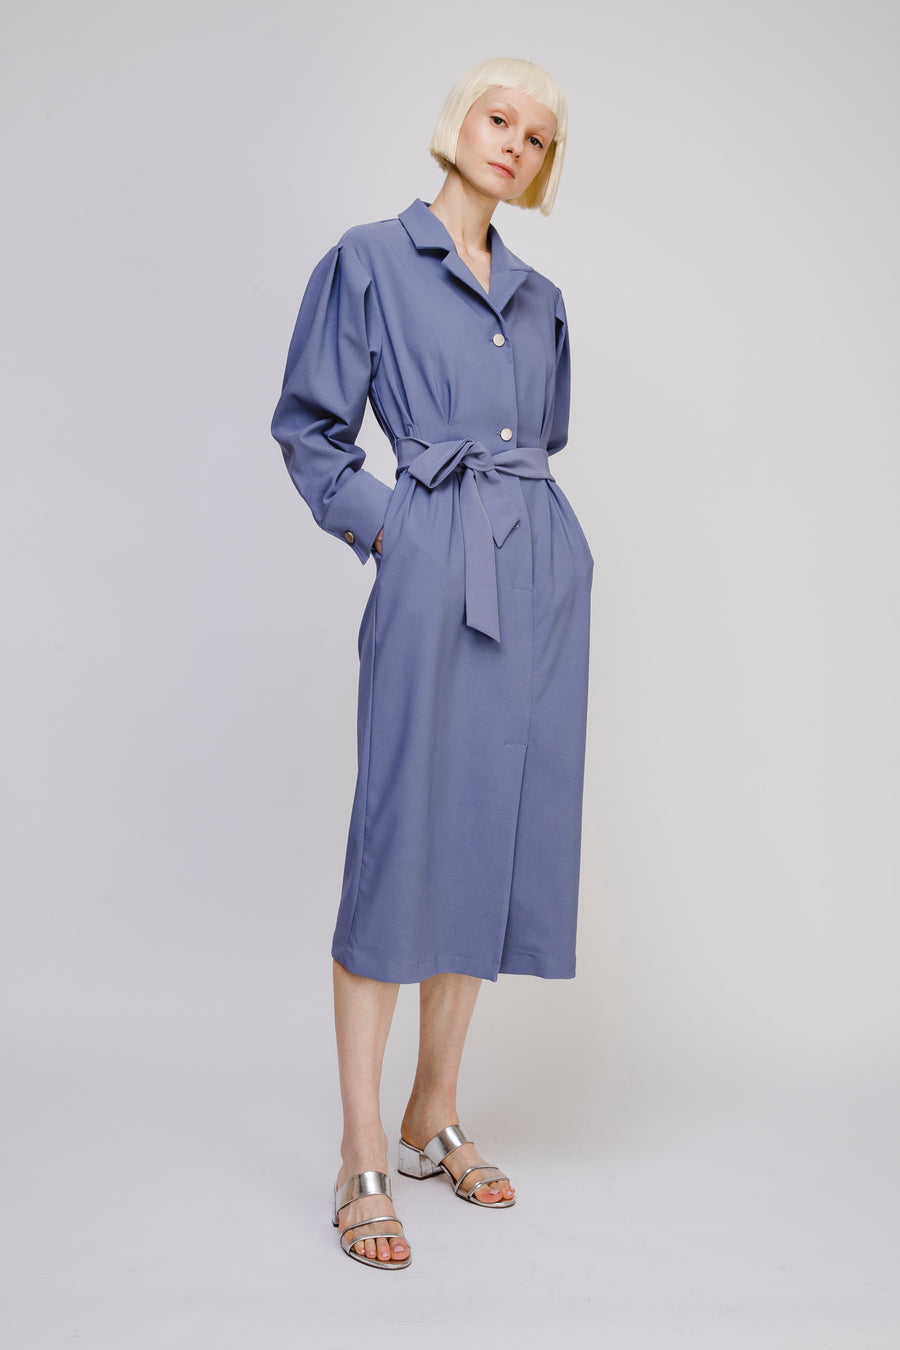 Collared Shirt Dress with Belt